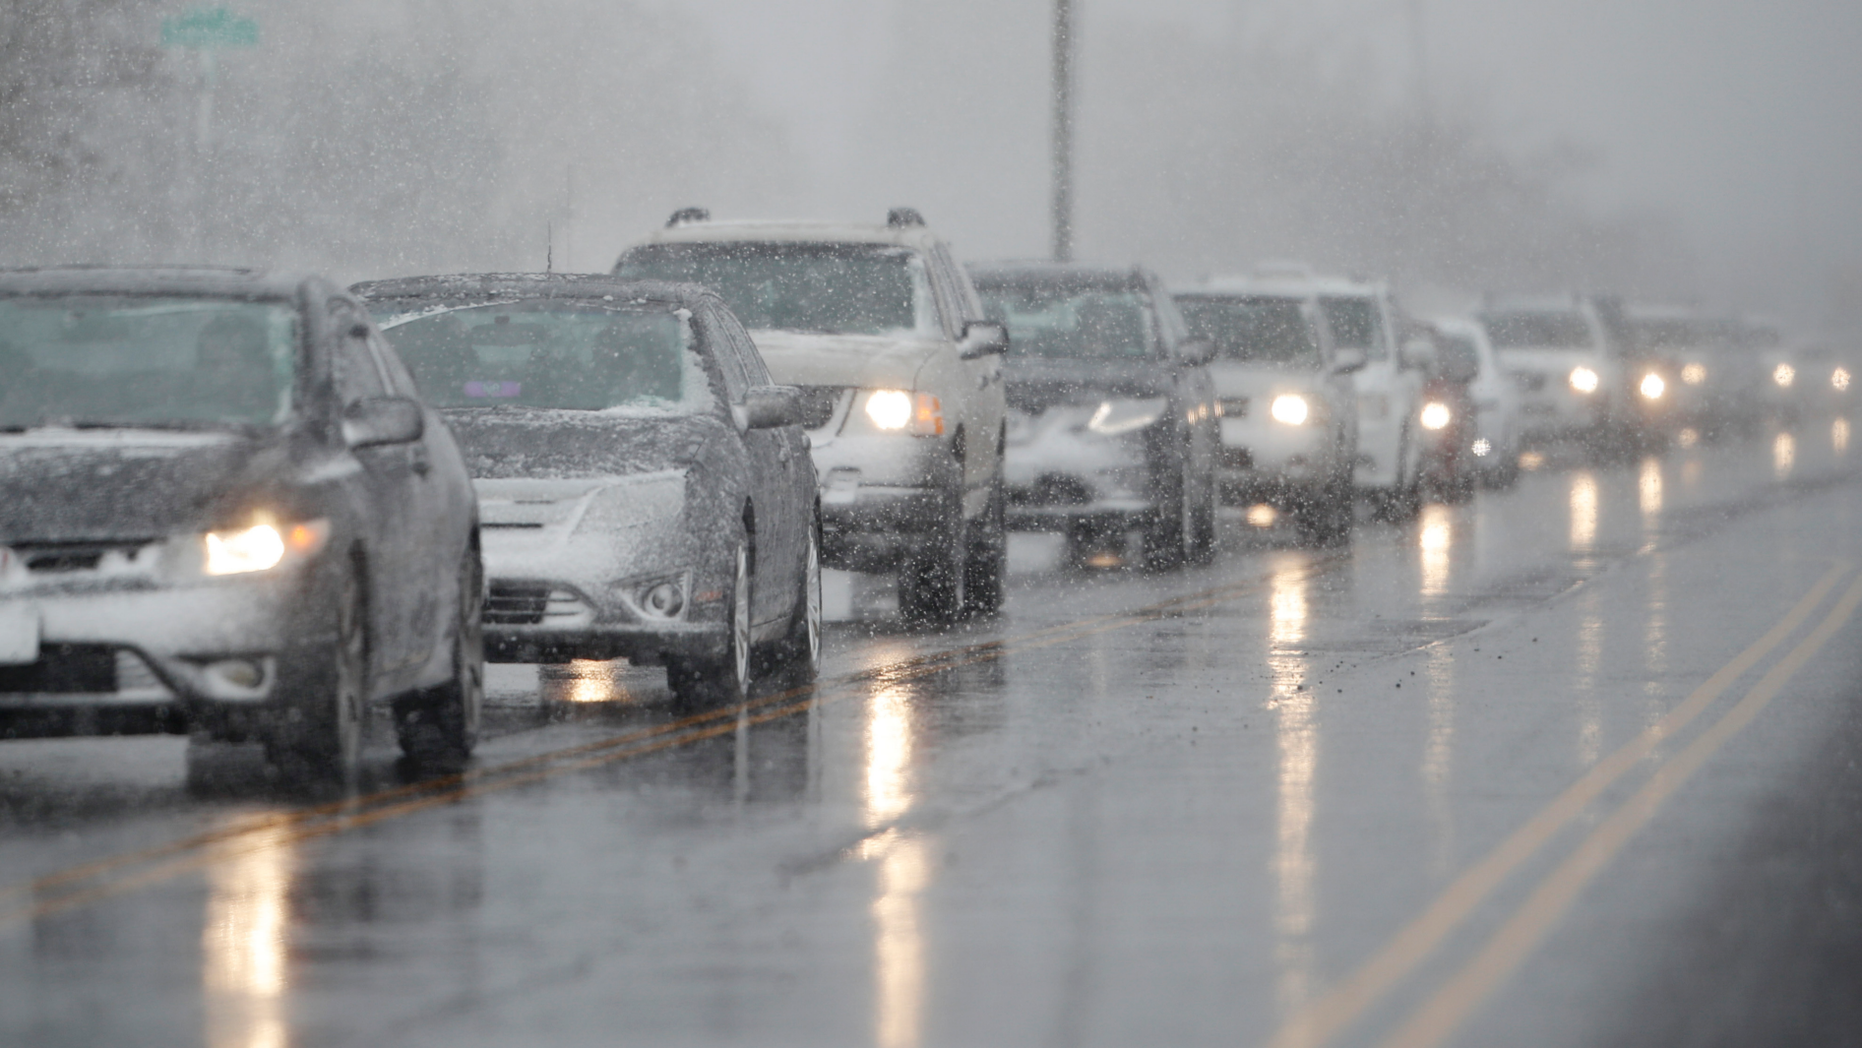 Traffic backs up along 56th Avenue as a spring storm rolls in before the evening rush hour Wednesday, April 10, 2019, in Denver. Blizzard warnings have been issued for the northern half of Colorado's heavily populated Front Range region, including Denver, as well as the state's northeastern plains through midday Thursday. (AP Photo/David Zalubowski)